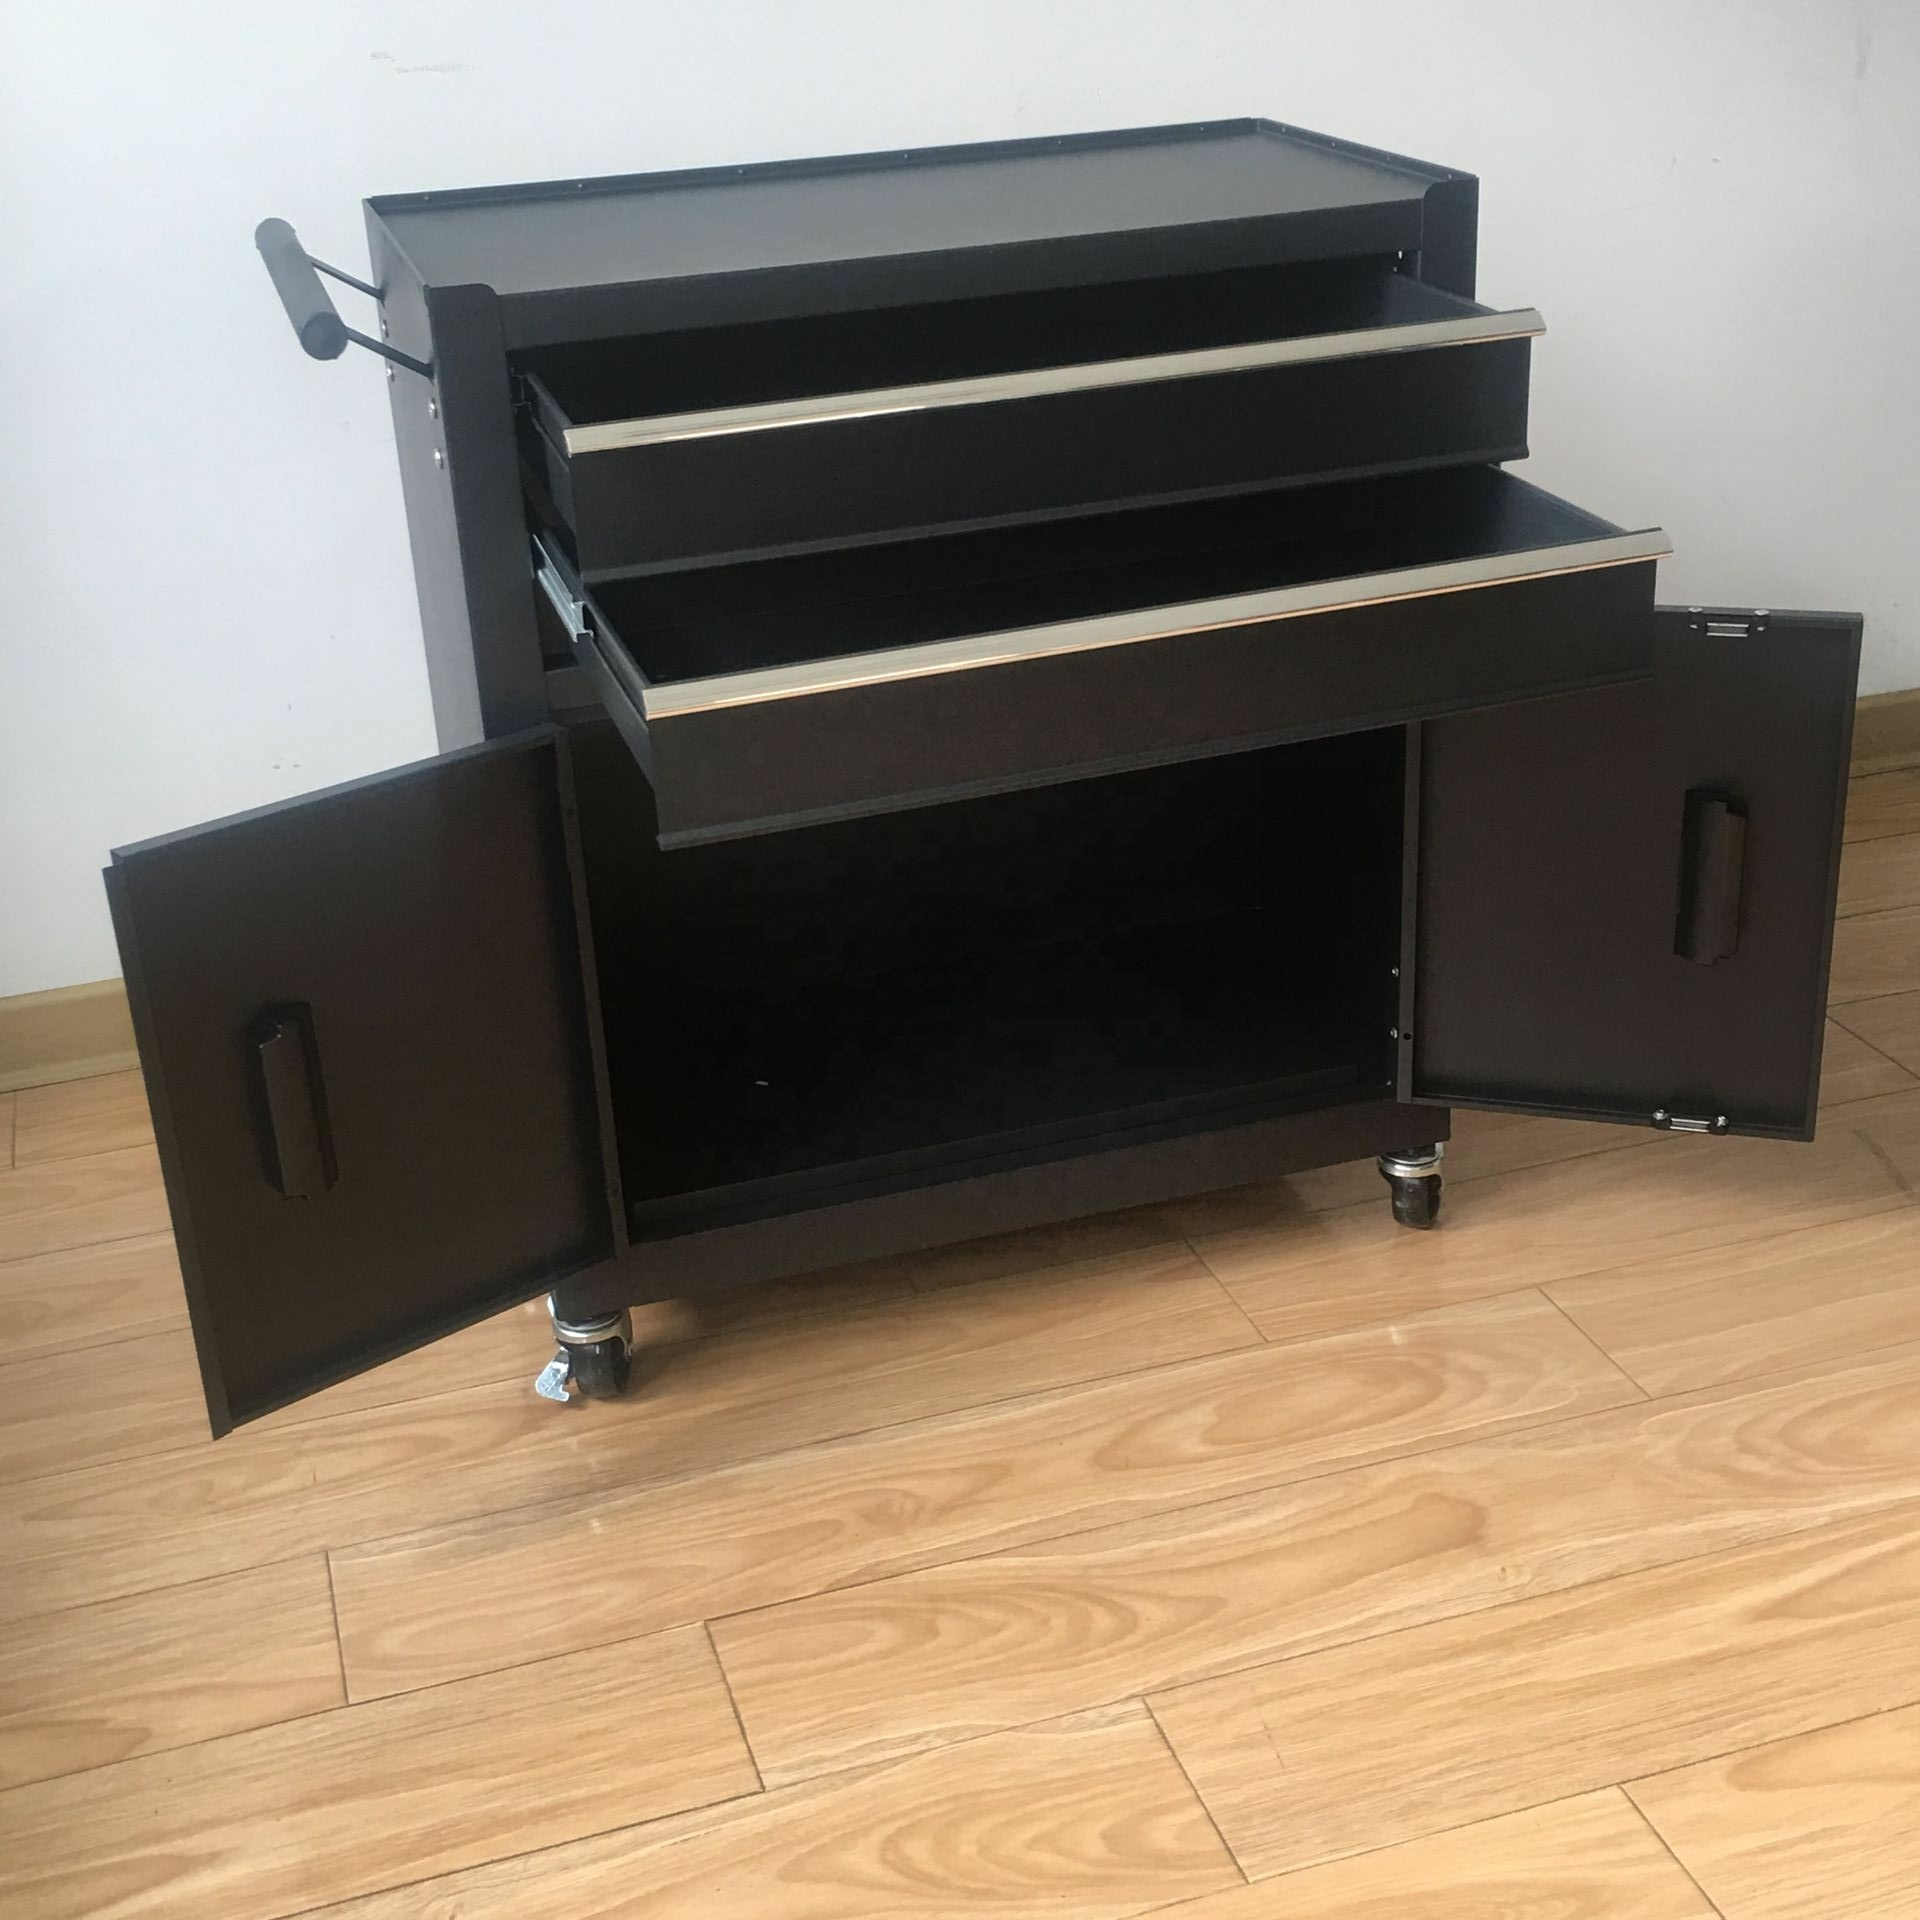 2 Drawers and 2 doors cheap metal Cabinet Chest Trolley